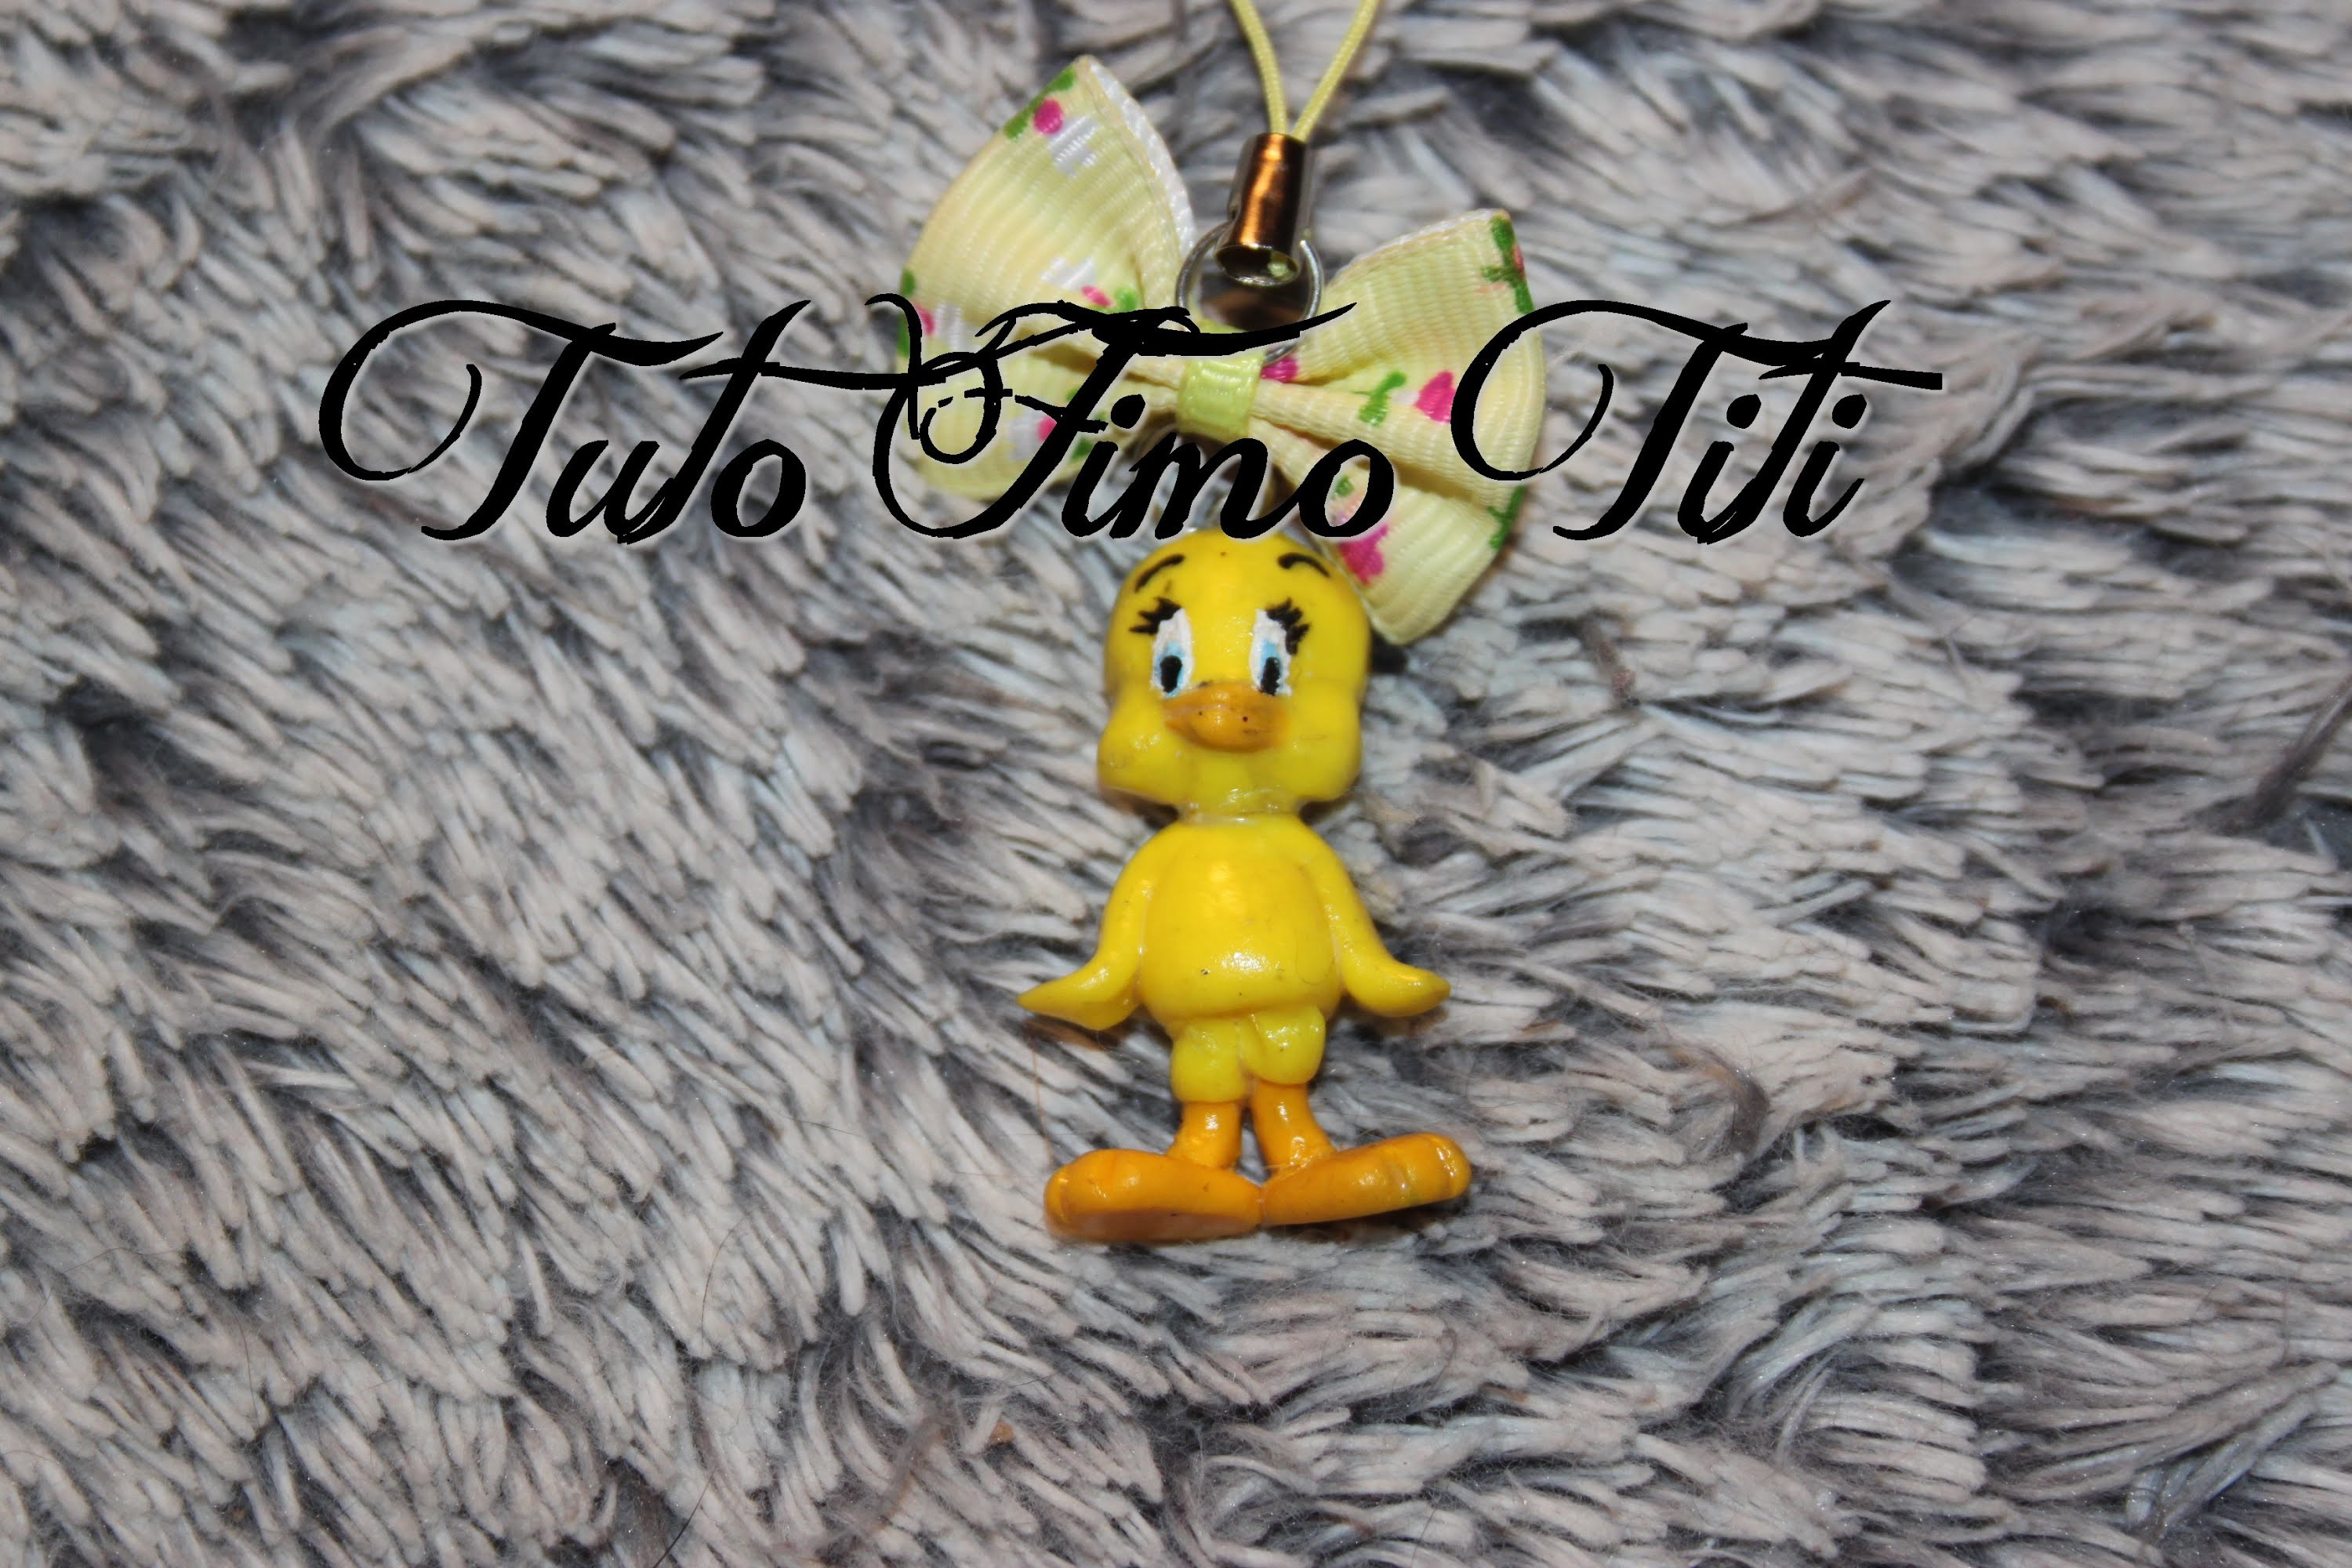 [♥ Tuto Fimo Titi ♥]  ✿ Polymer Clay Tutorial Tweety bird ✿